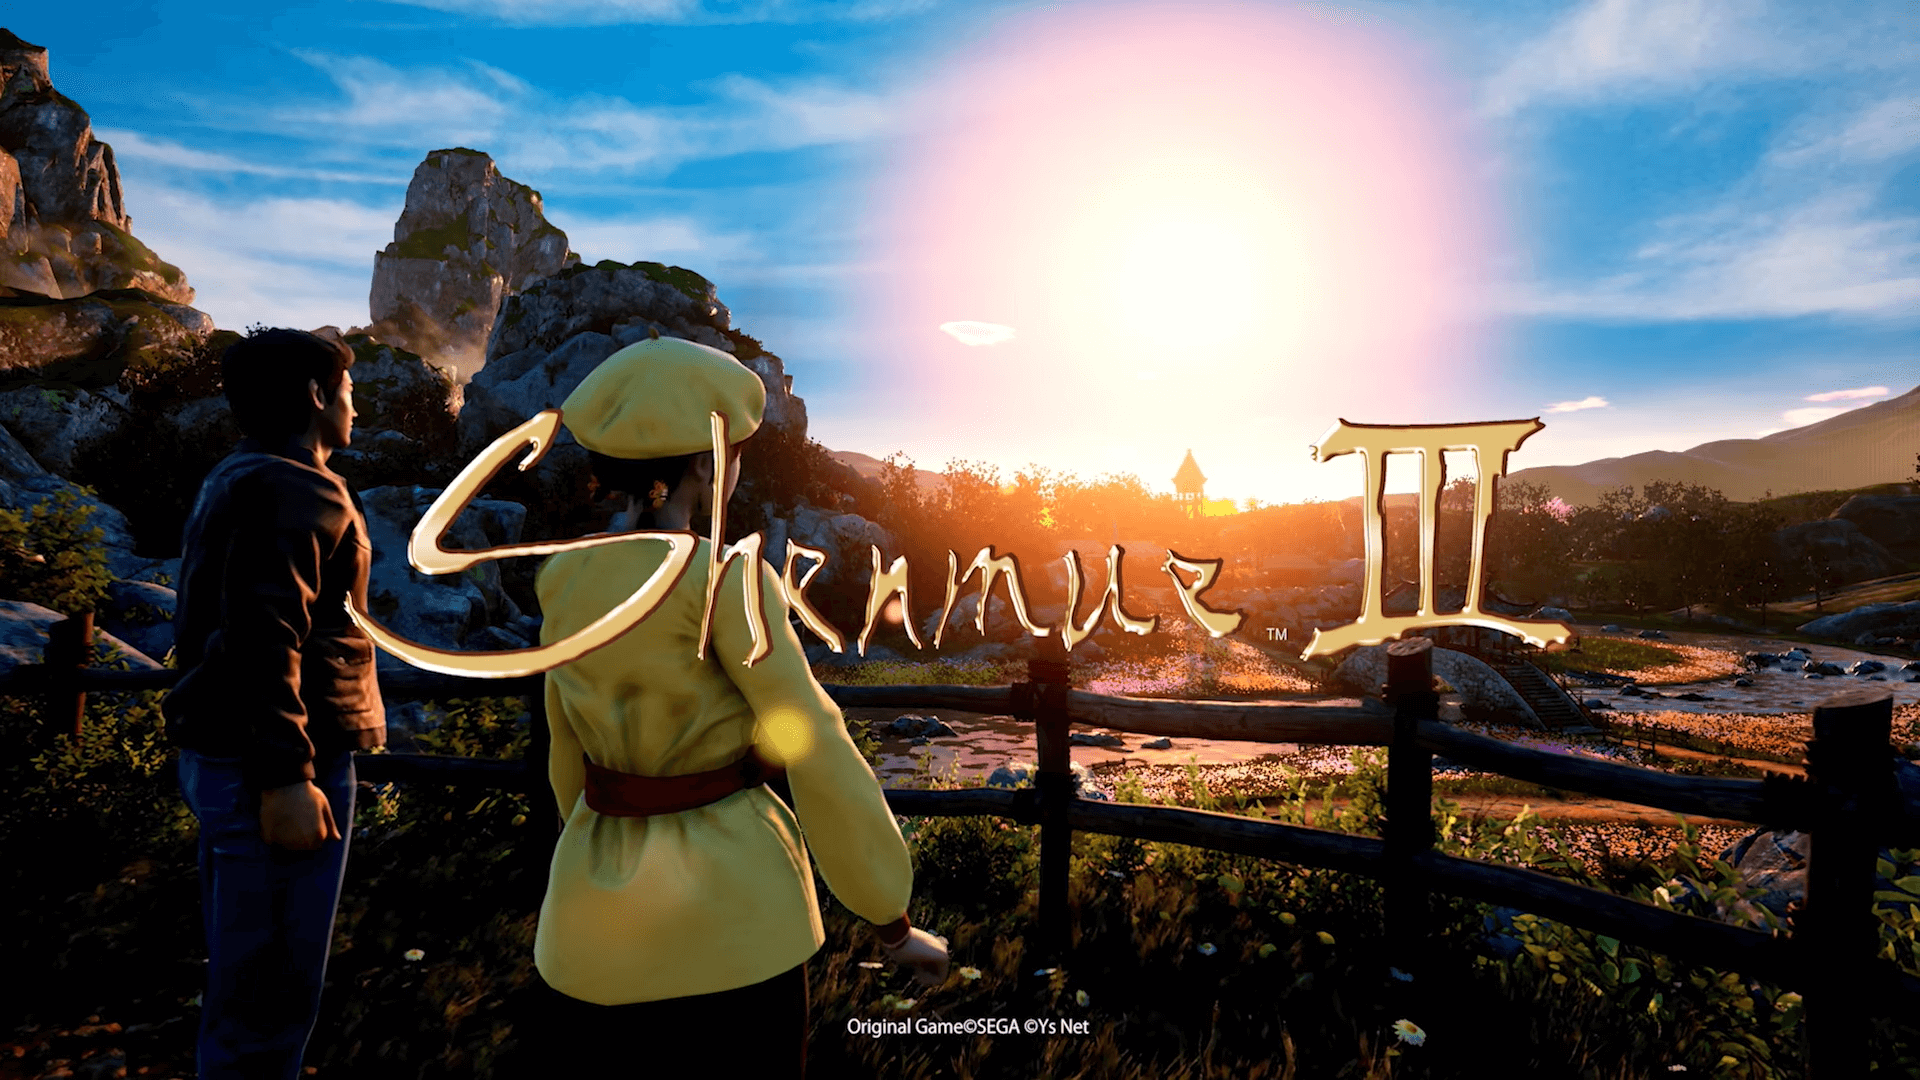 Shenmue 3 PC File Size is 100GB